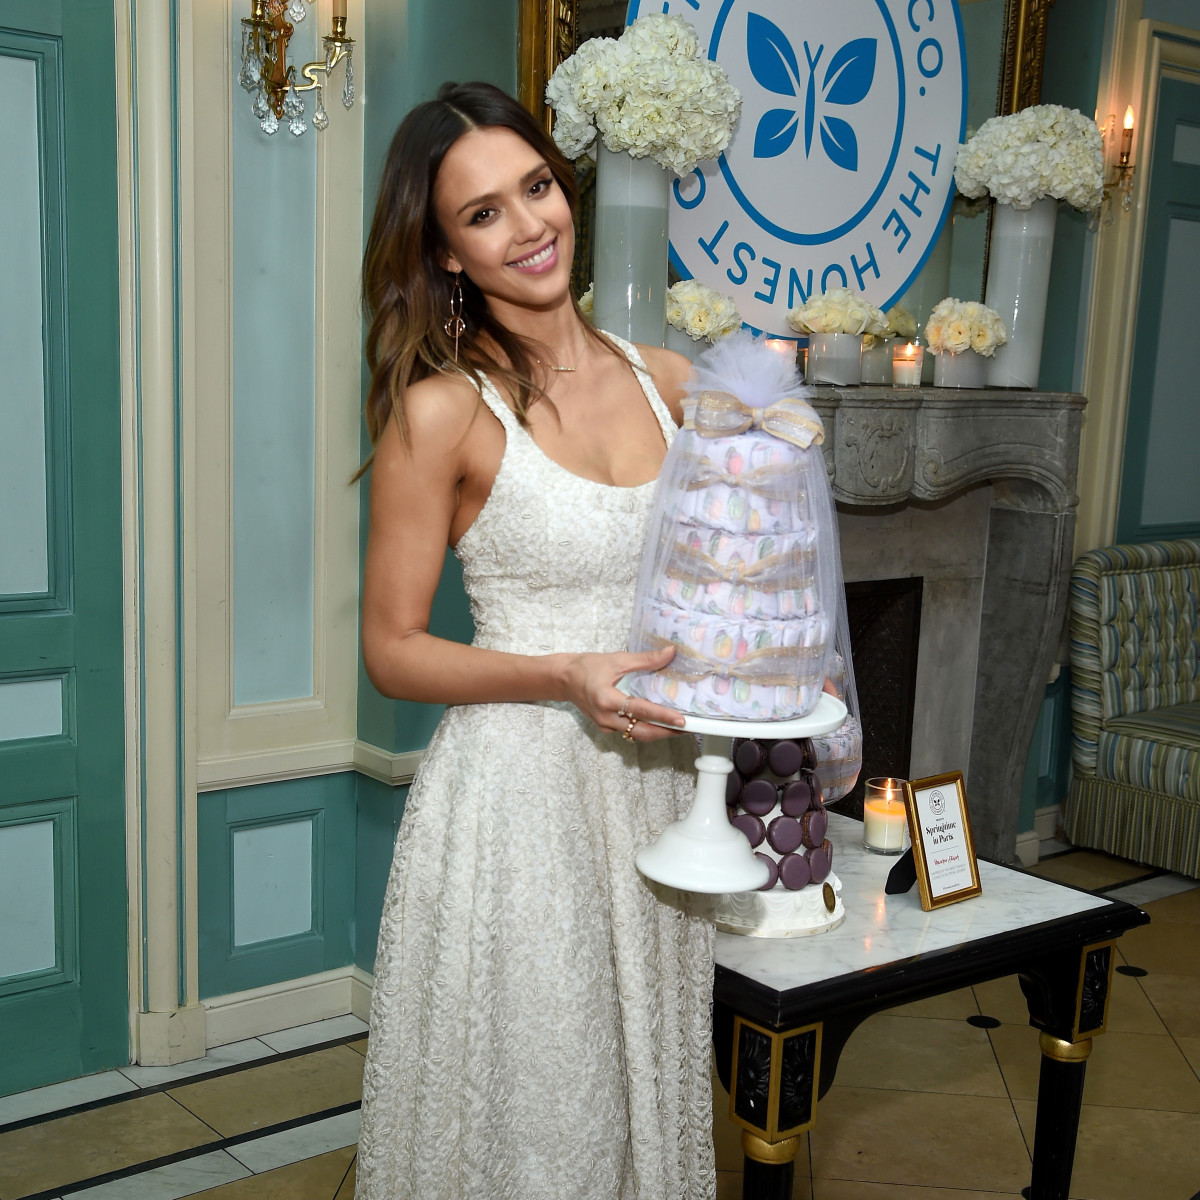 Jessica Alba at a launch event for The Honest Company's Springtime in Paris Diaper Collection on March 9. Photo: Dimitrios Kambouris/Getty Images for The Honest Company